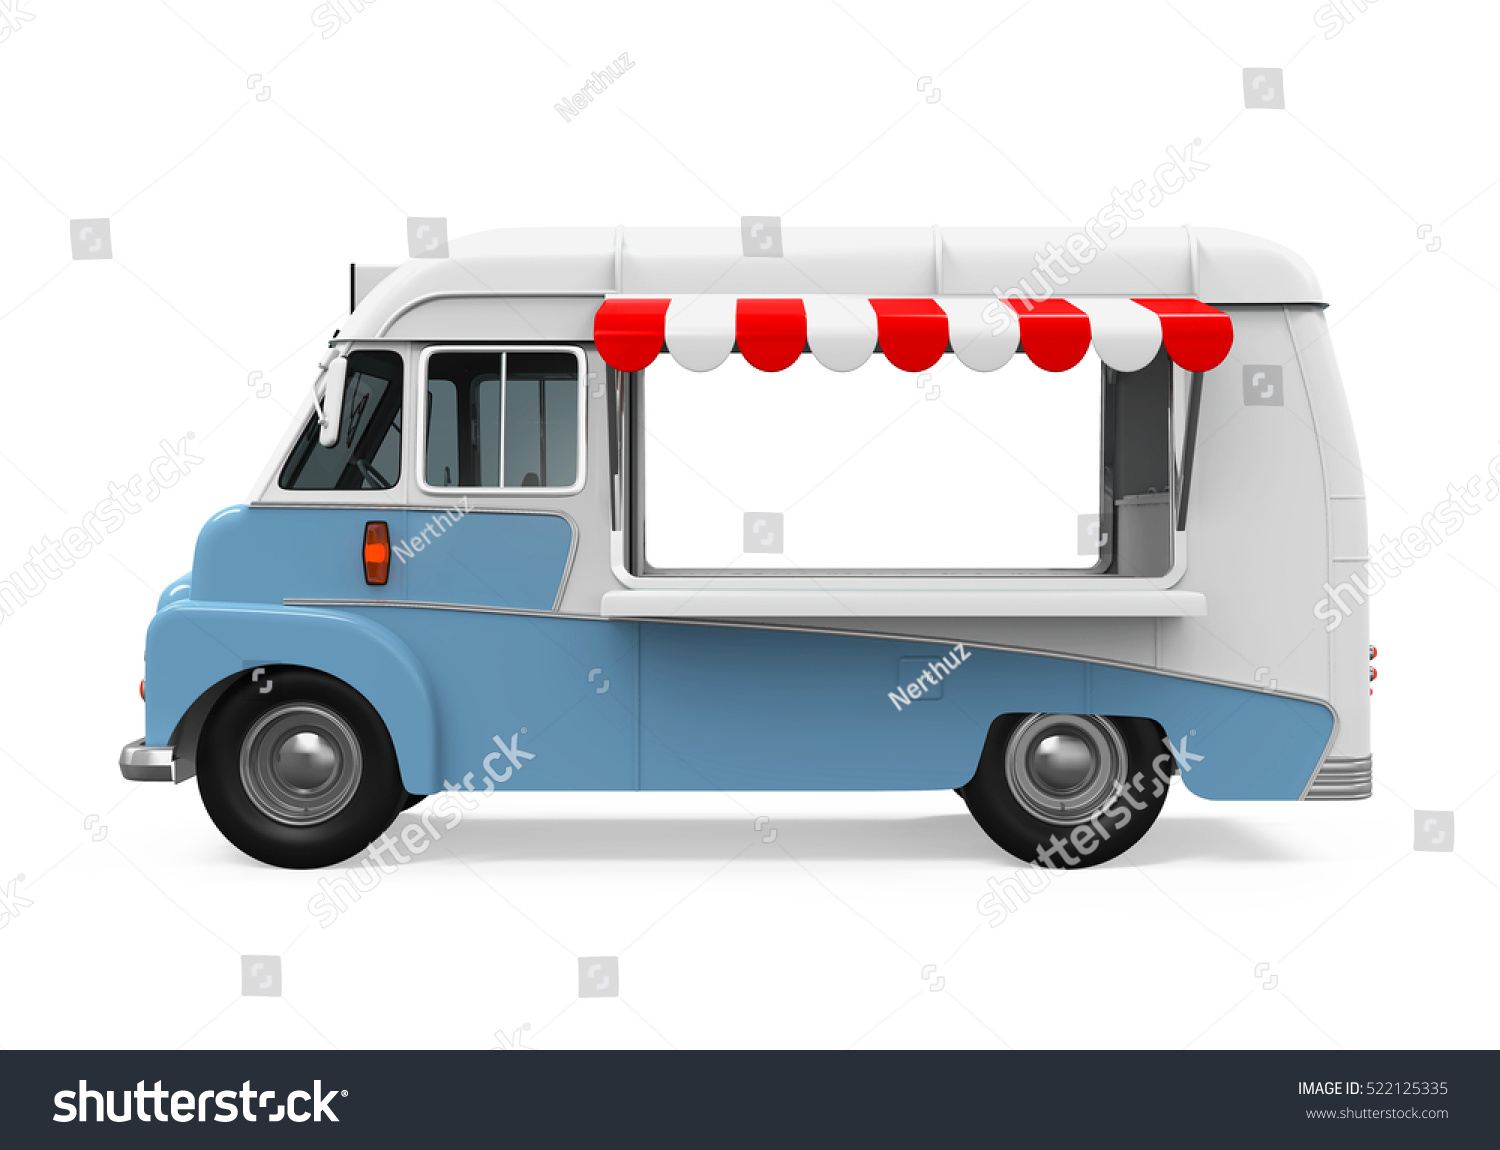 Design Your Own Food Truck Project